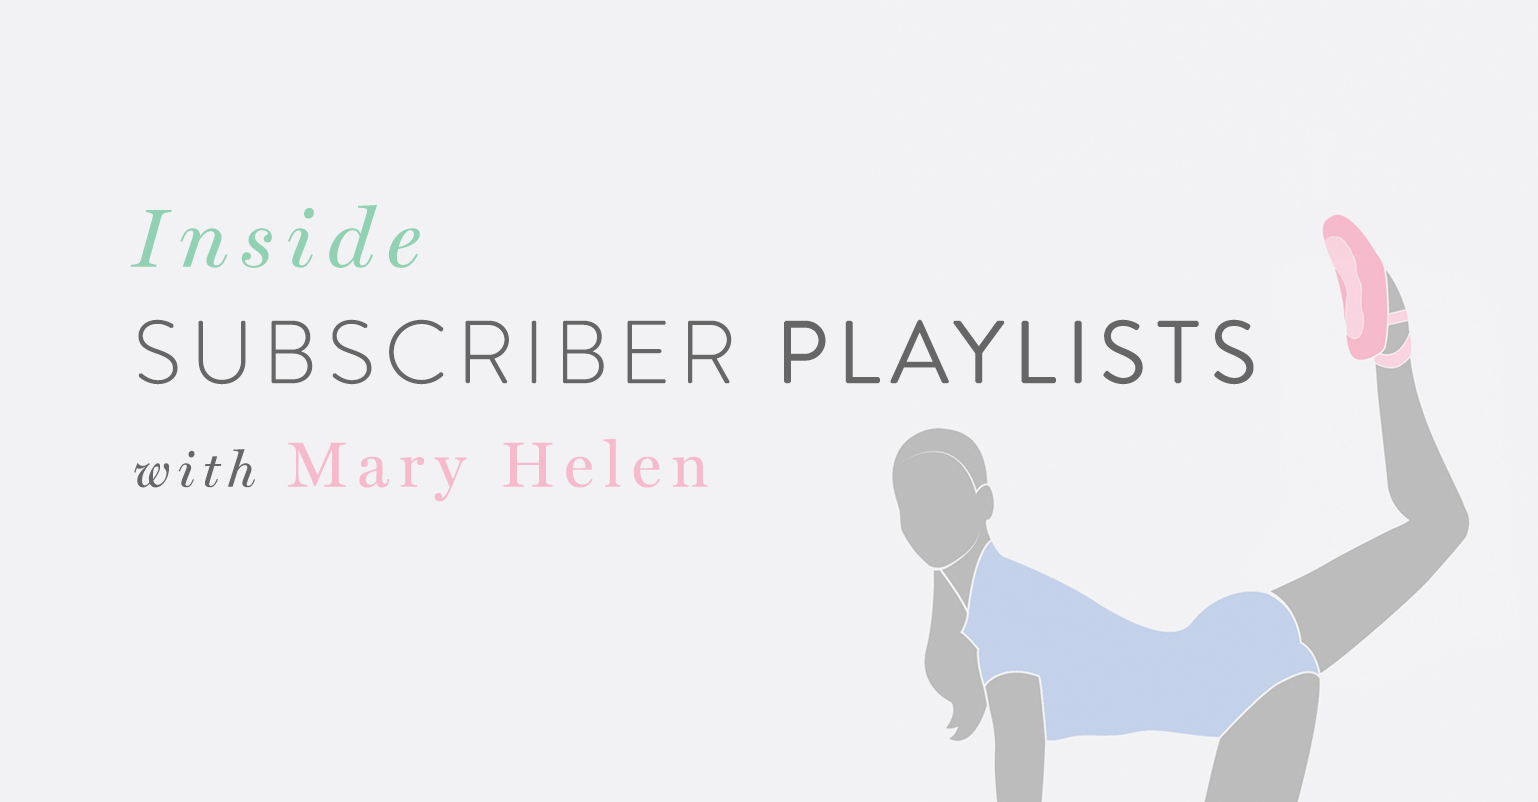 Inside Subscriber Playlists